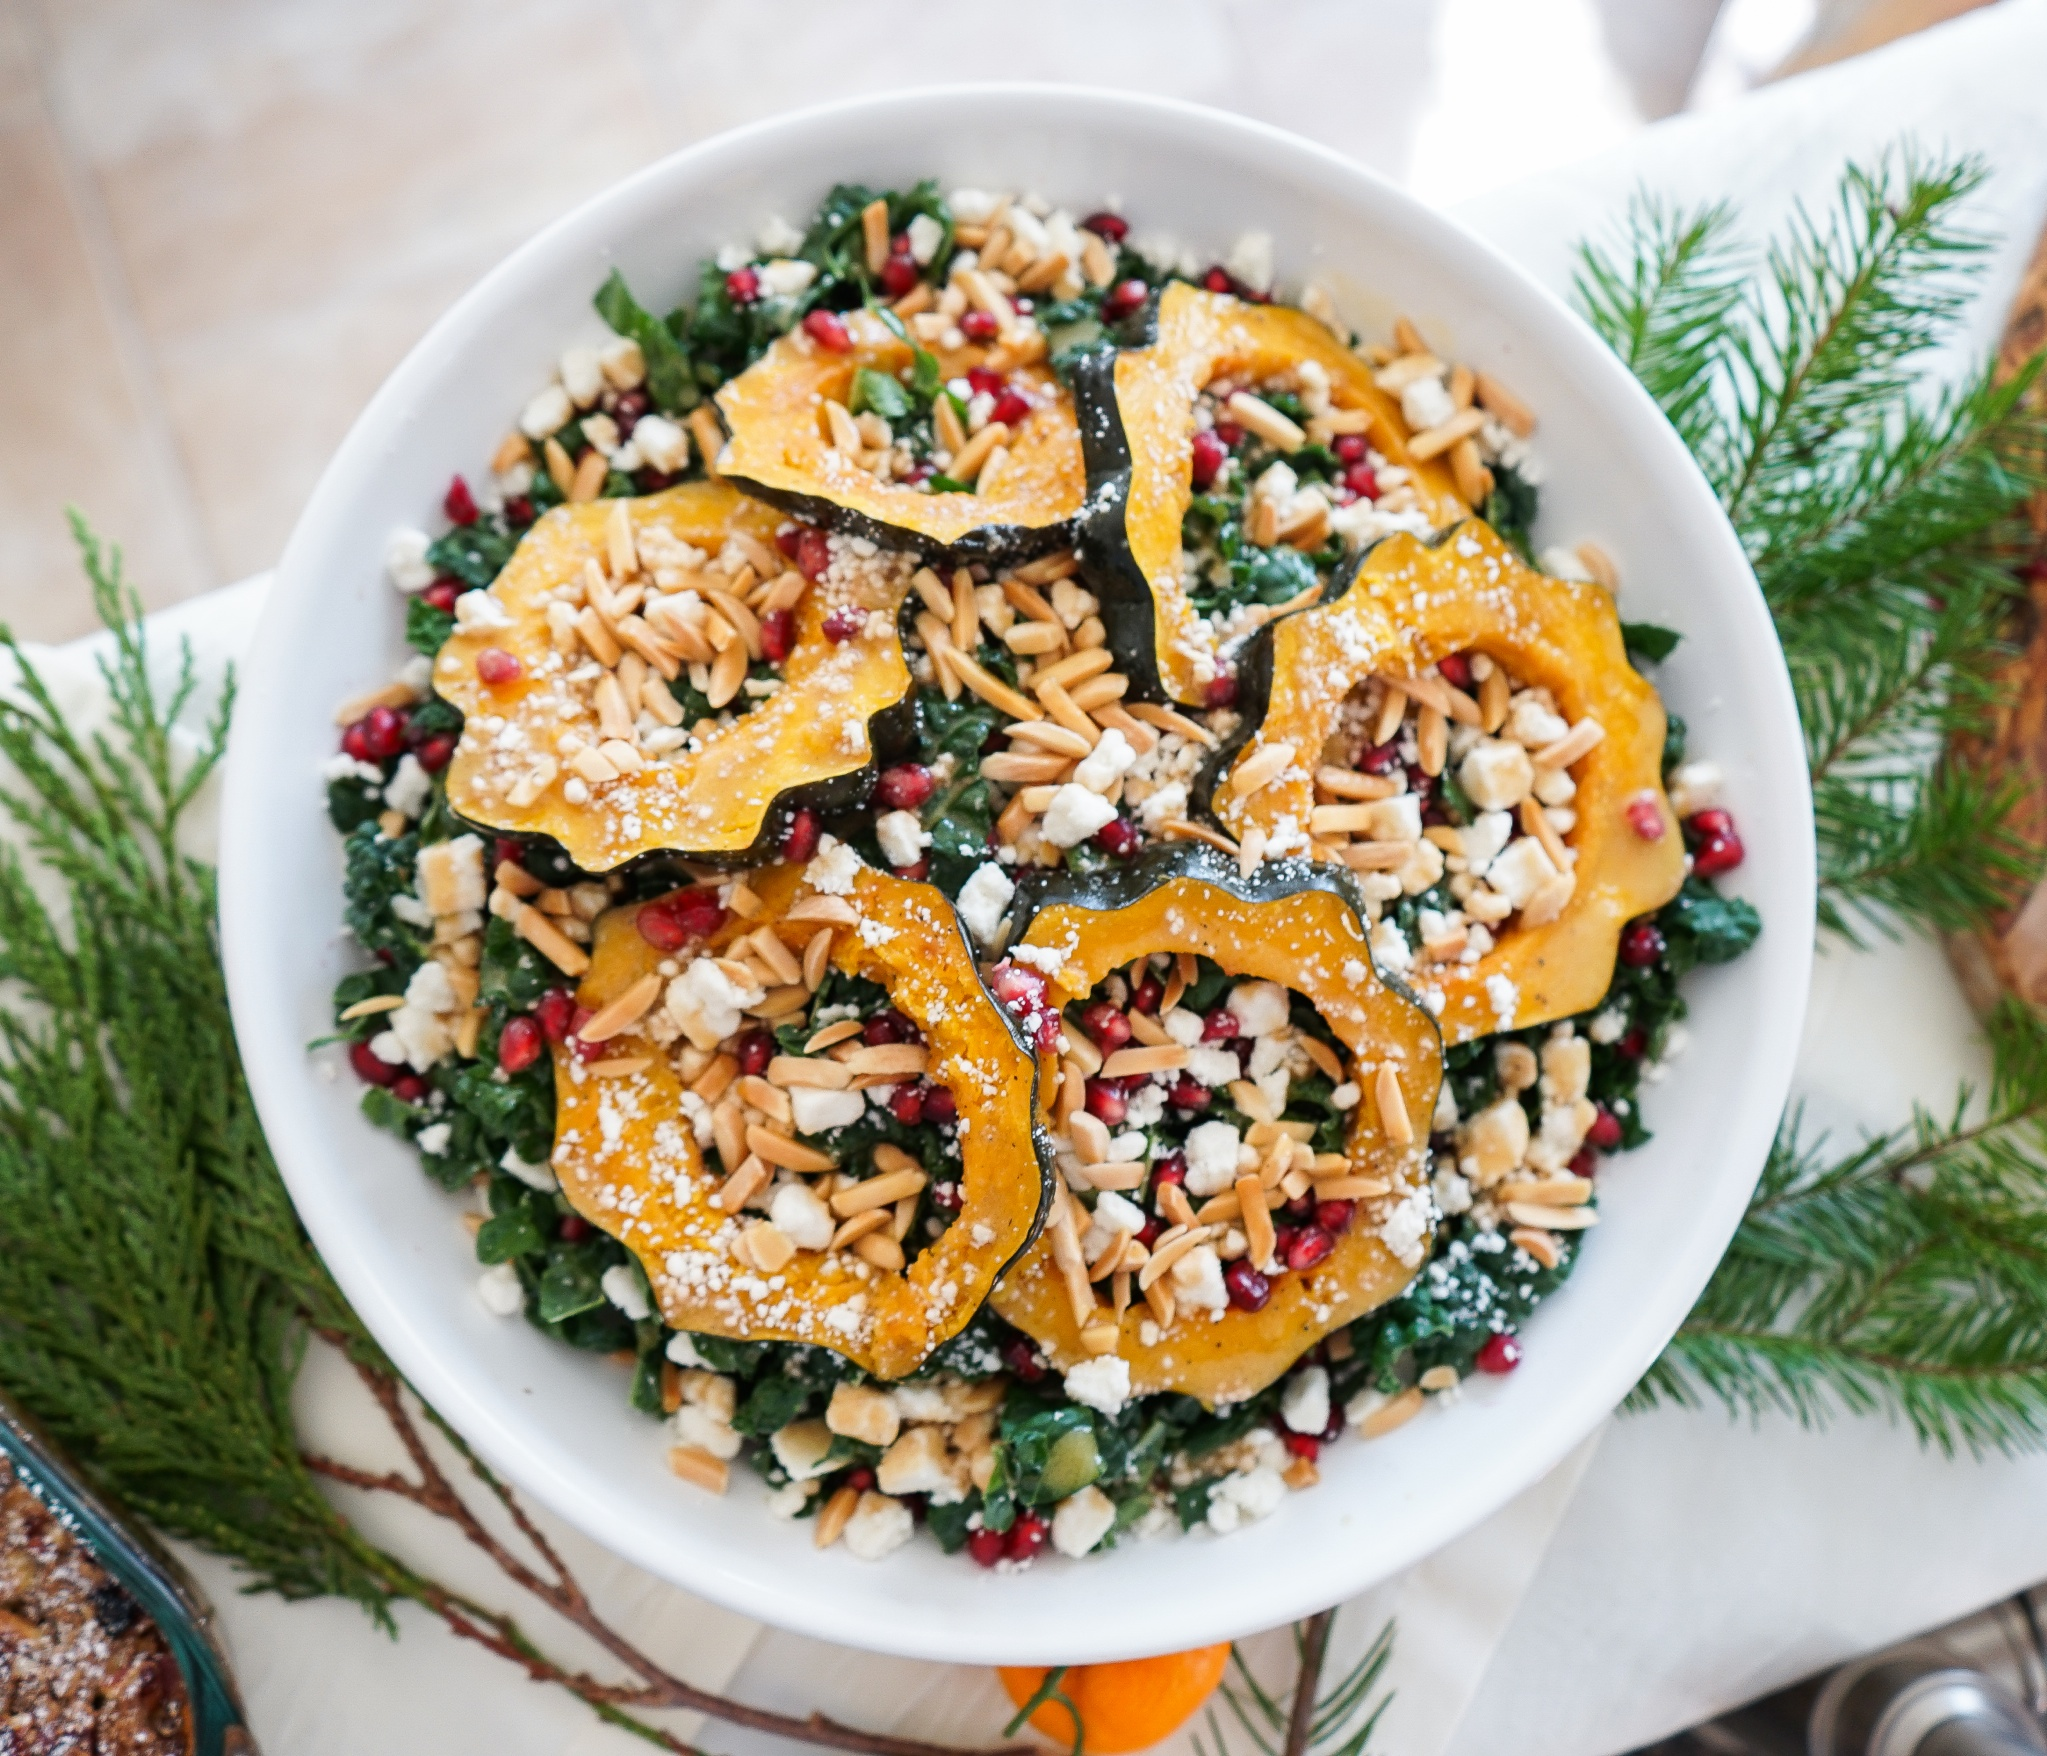 Salad with kale, roasted acorn squash, pomegranate seeds, almonds, and ricotta salata